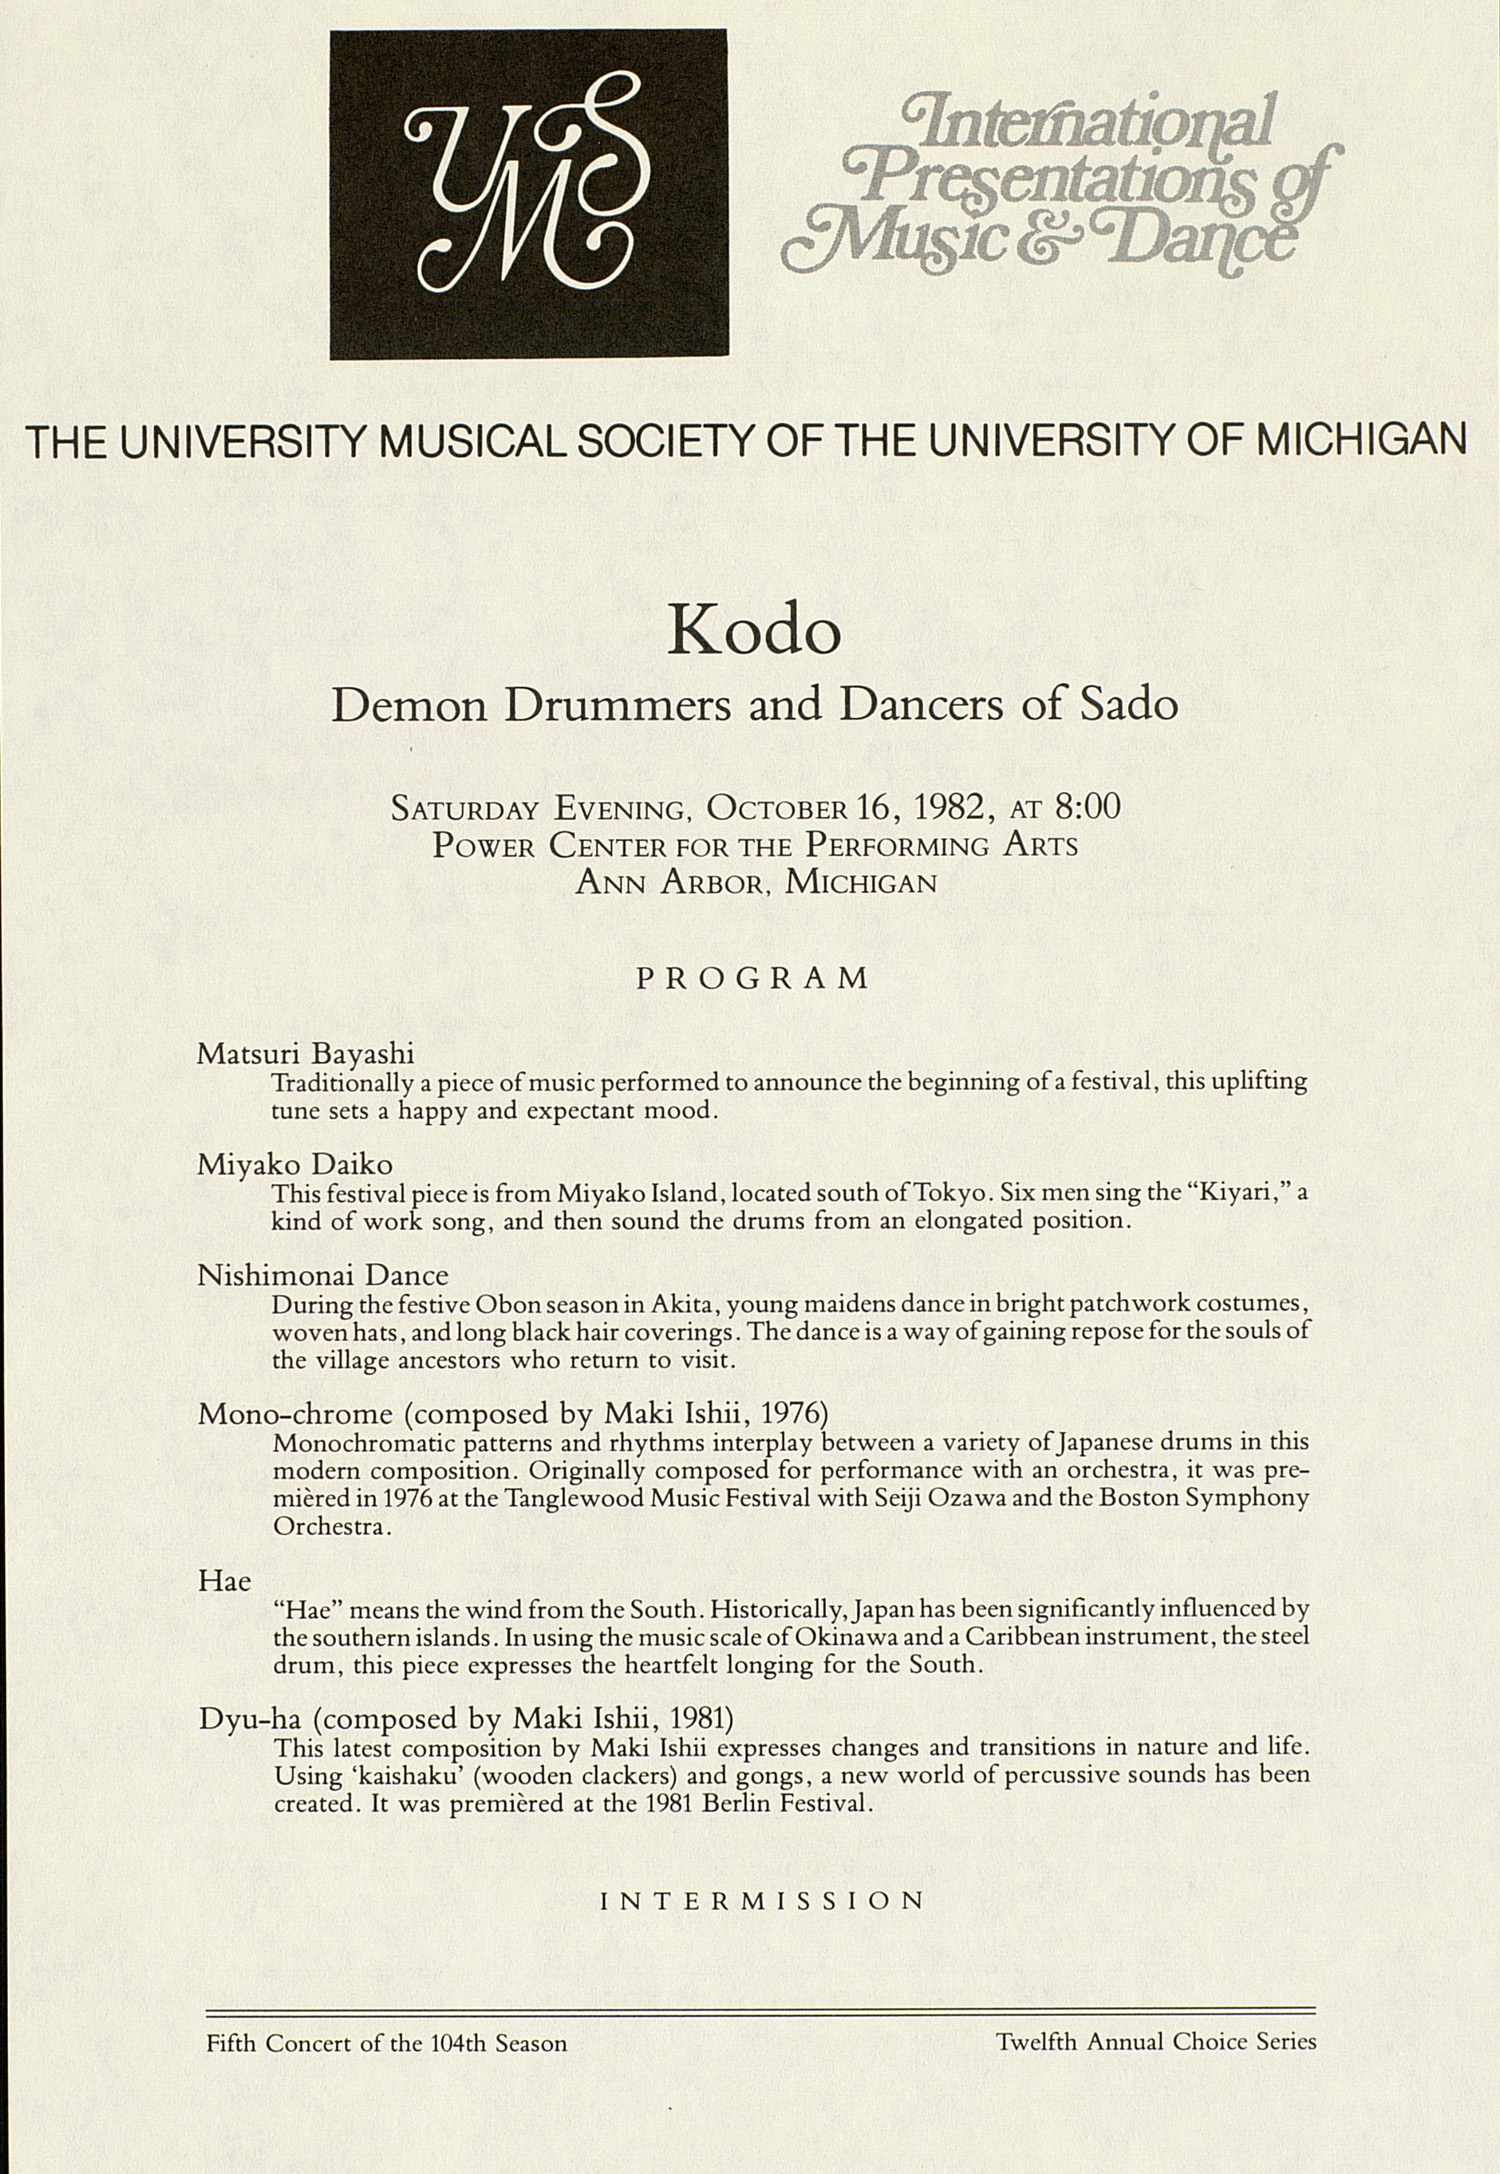 UMS Concert Program, October 16, 1982: International Presentations Of Music & Dance --  image